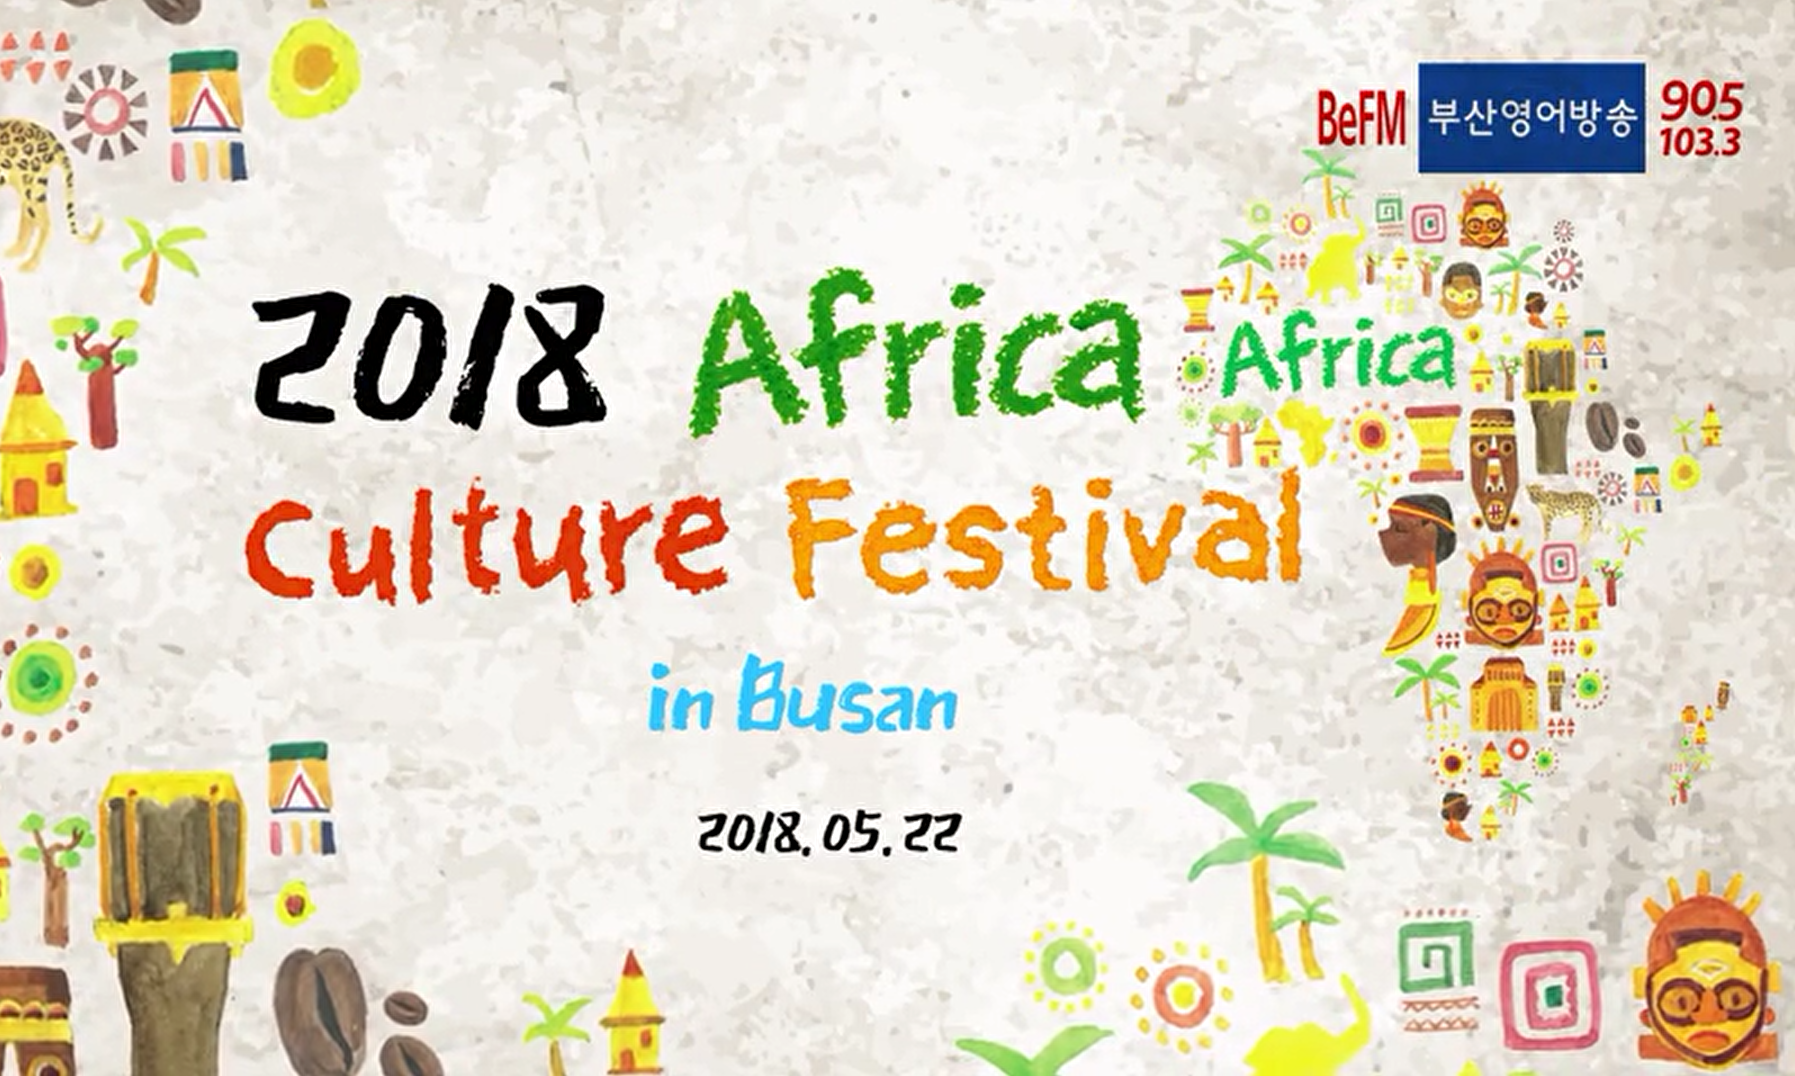 2018 Africa Culture Festival in Busan Thumbnail